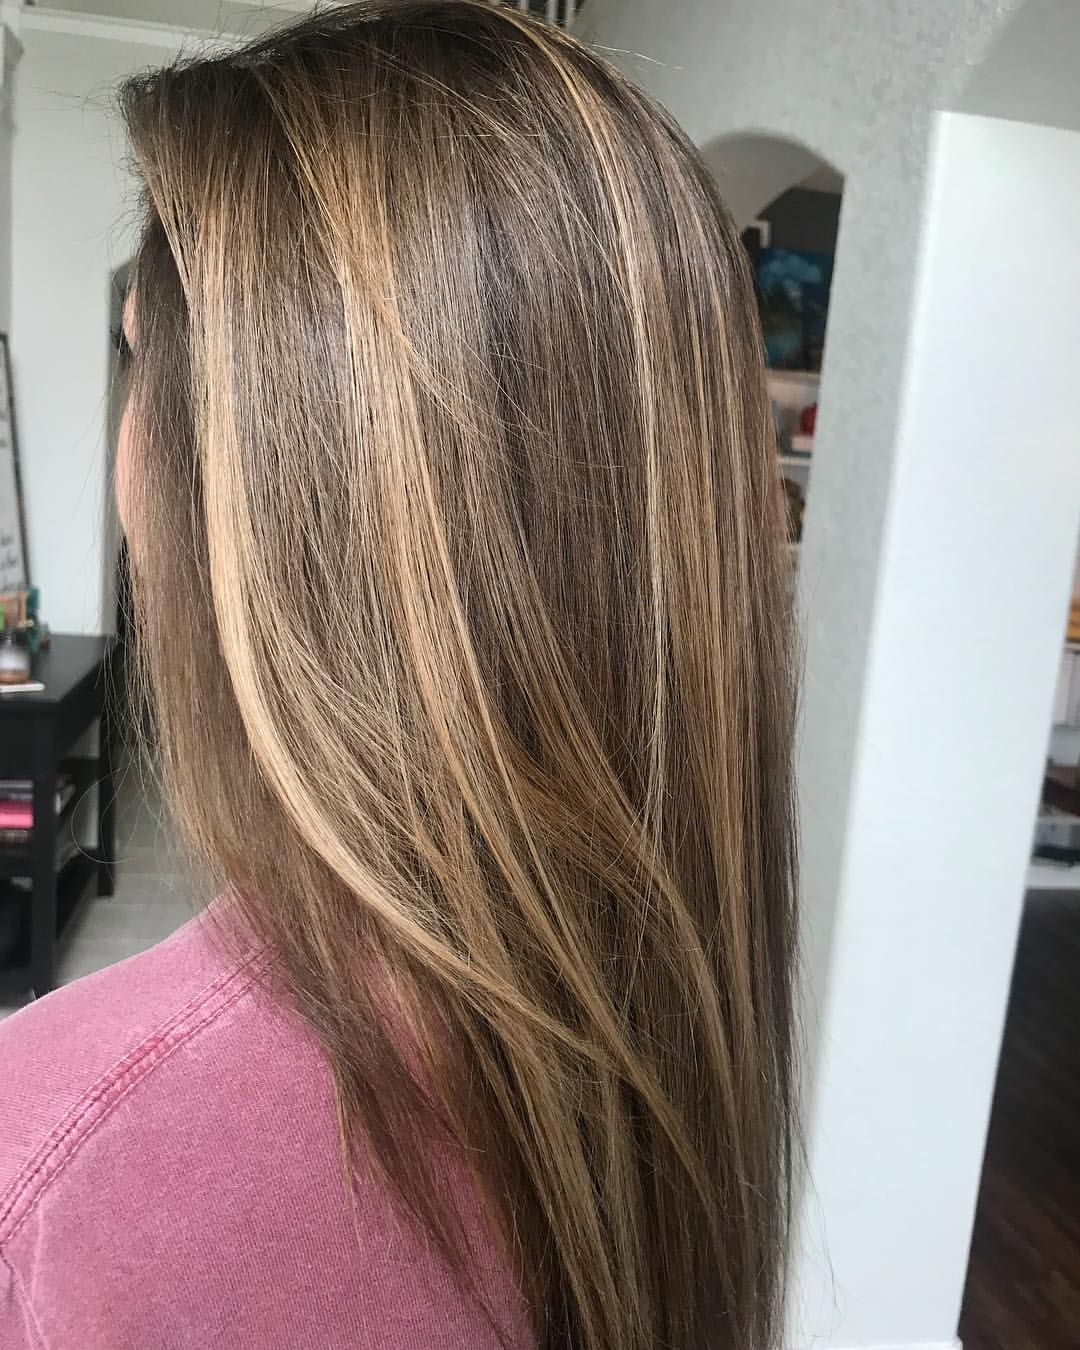 Haircolorbalayage Balayage Straight Hair Ombre Hair Blonde Sunkissed Hair Brunette